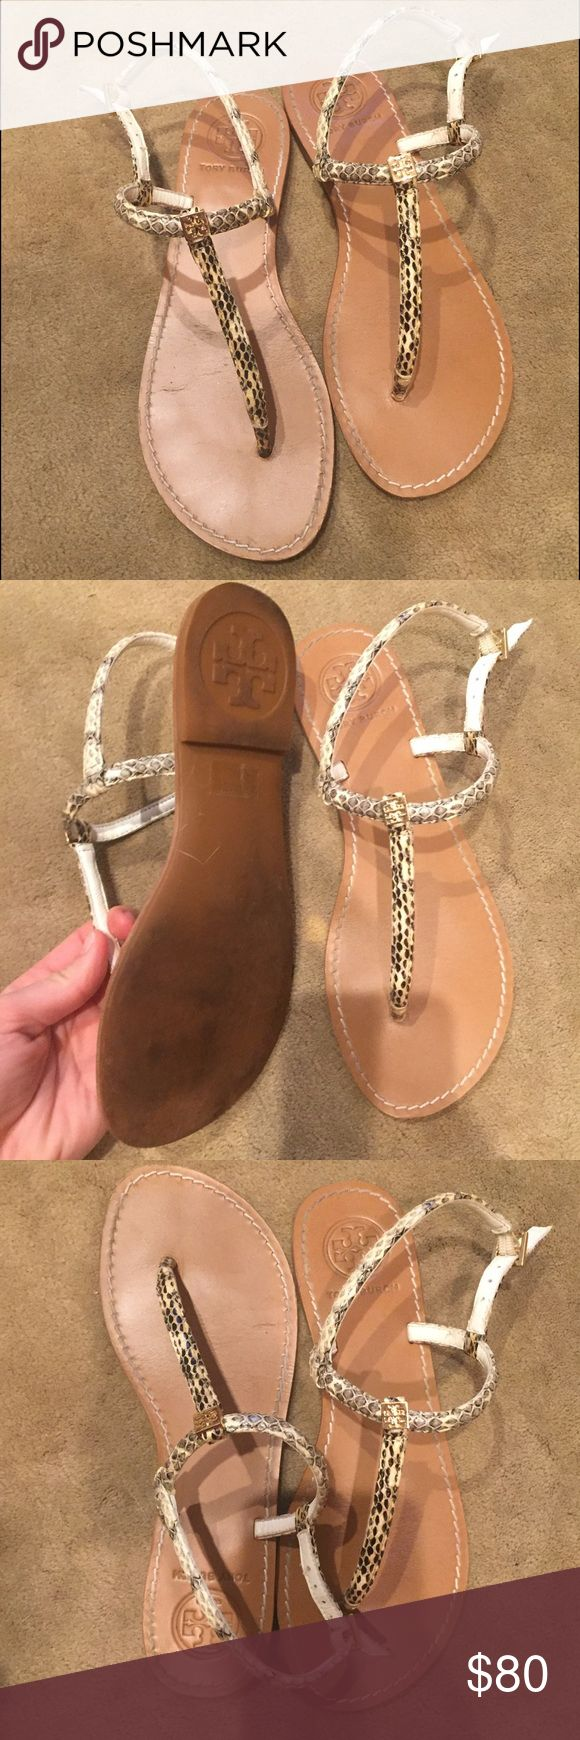 Tory Burch Sandals T strap snake print sandals. In really good condition only worn a handful of times. Grey neutral sandal, only selling because I wear my other TB sandals more often. Tory Burch Shoes Sandals